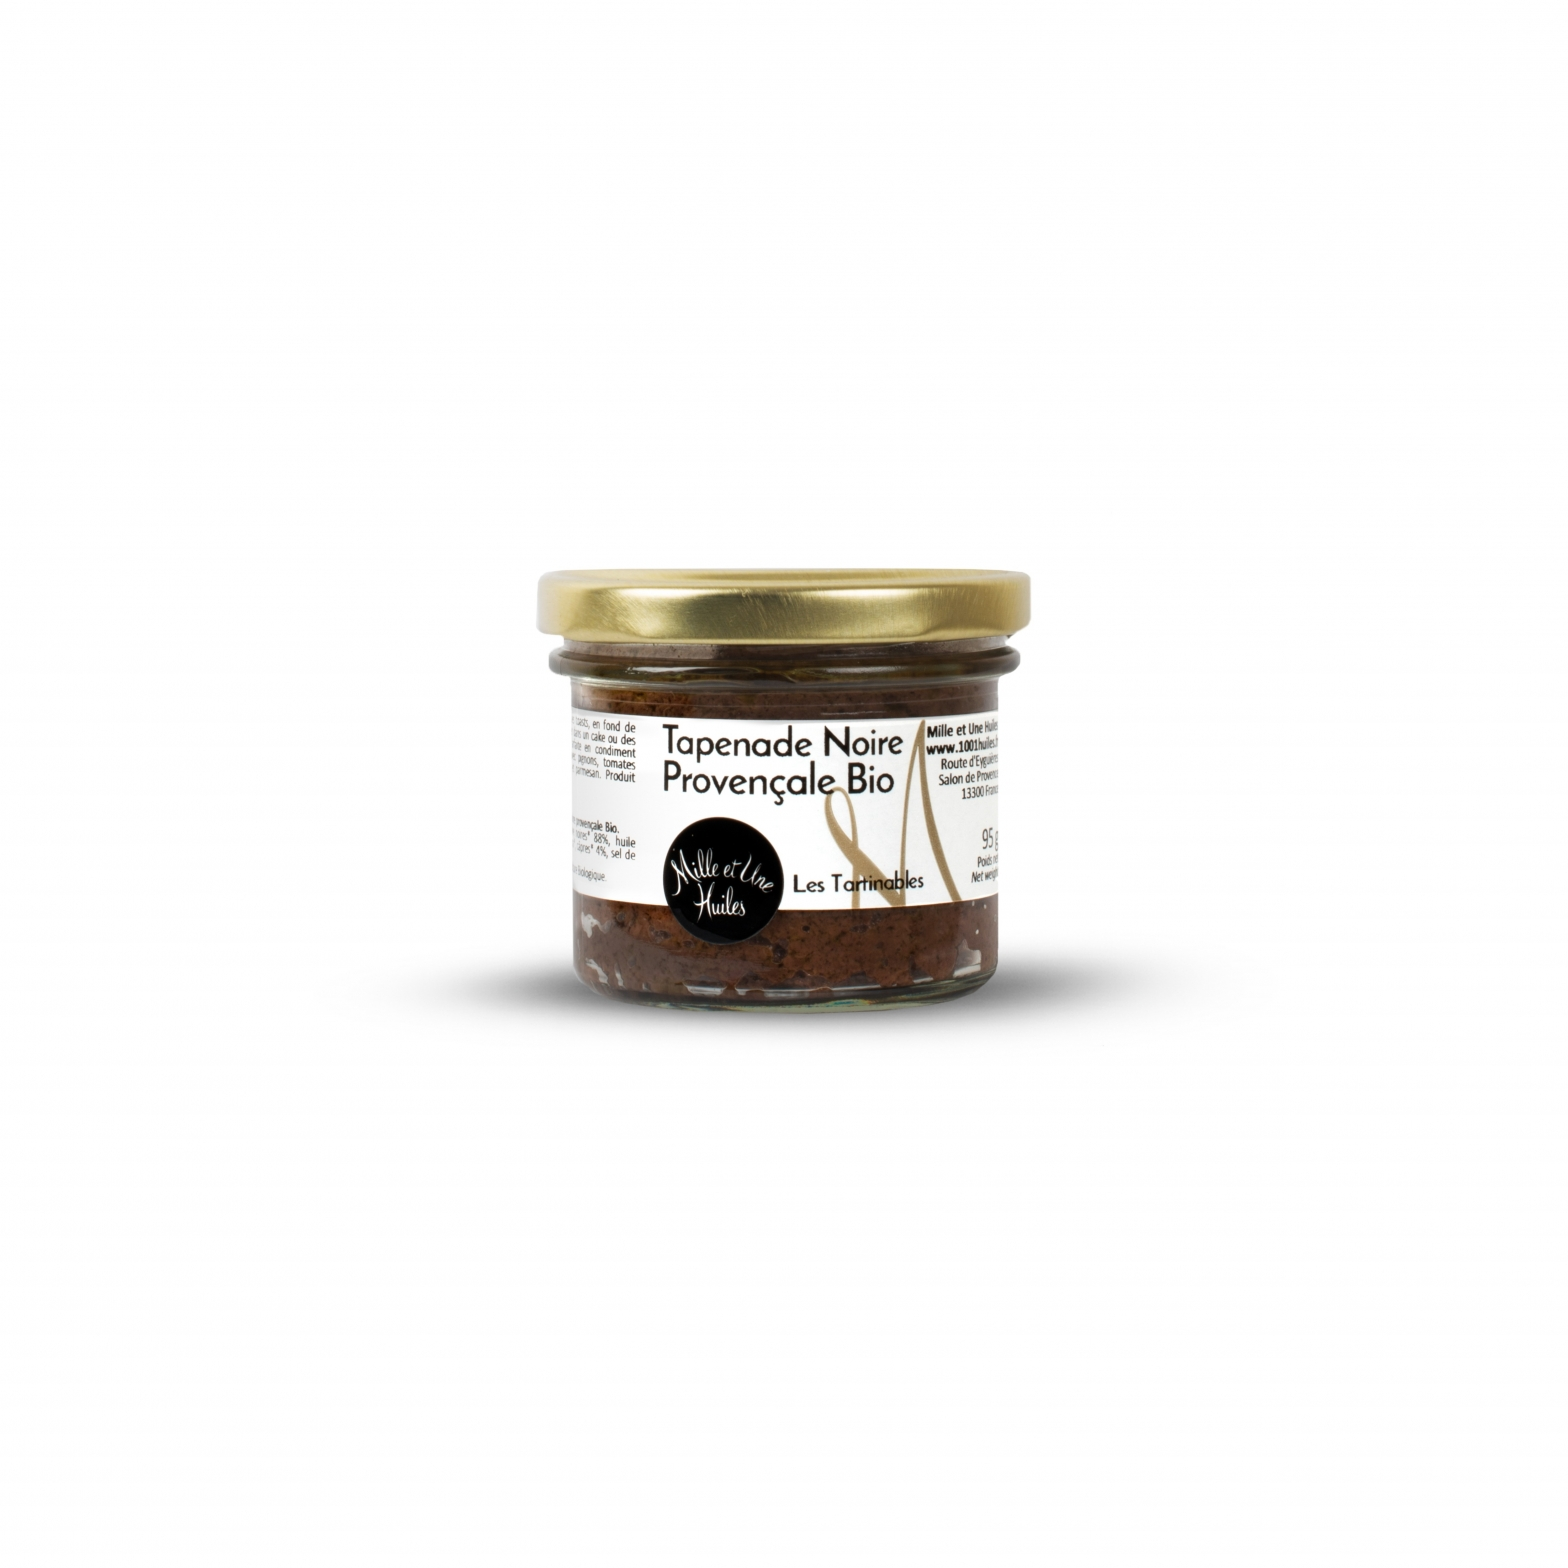 Organic black tapenade (black olive spread with capers)